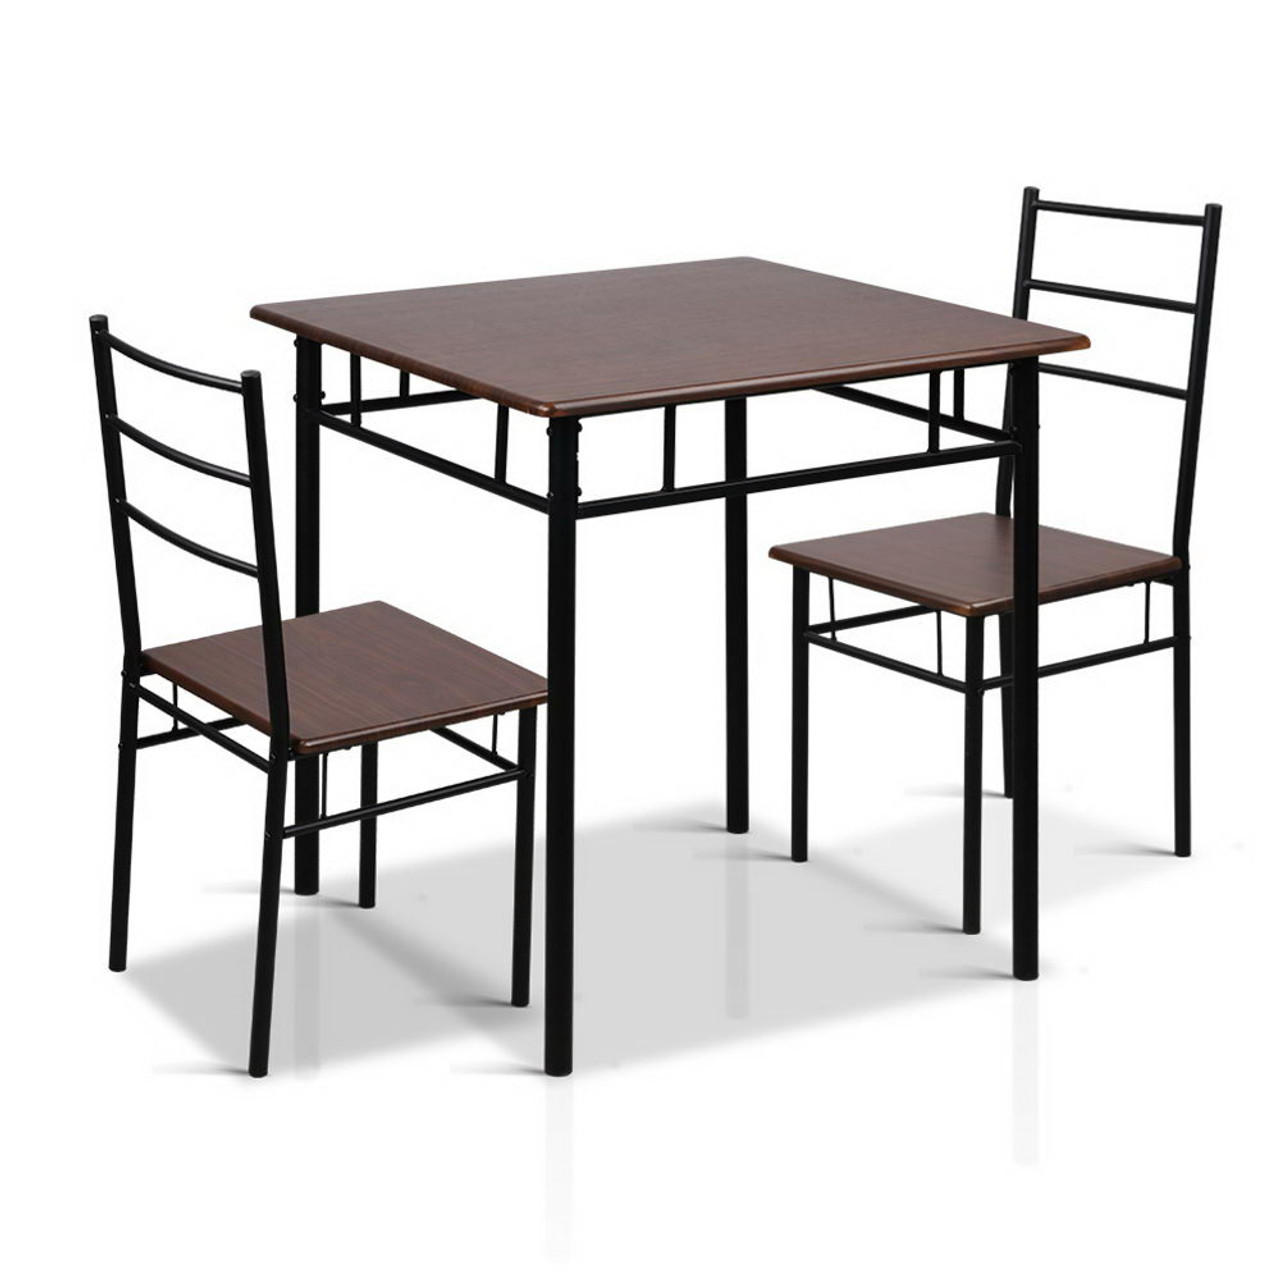 Free shipping for all deliveries within australia artiss metal table and chairs walnut black